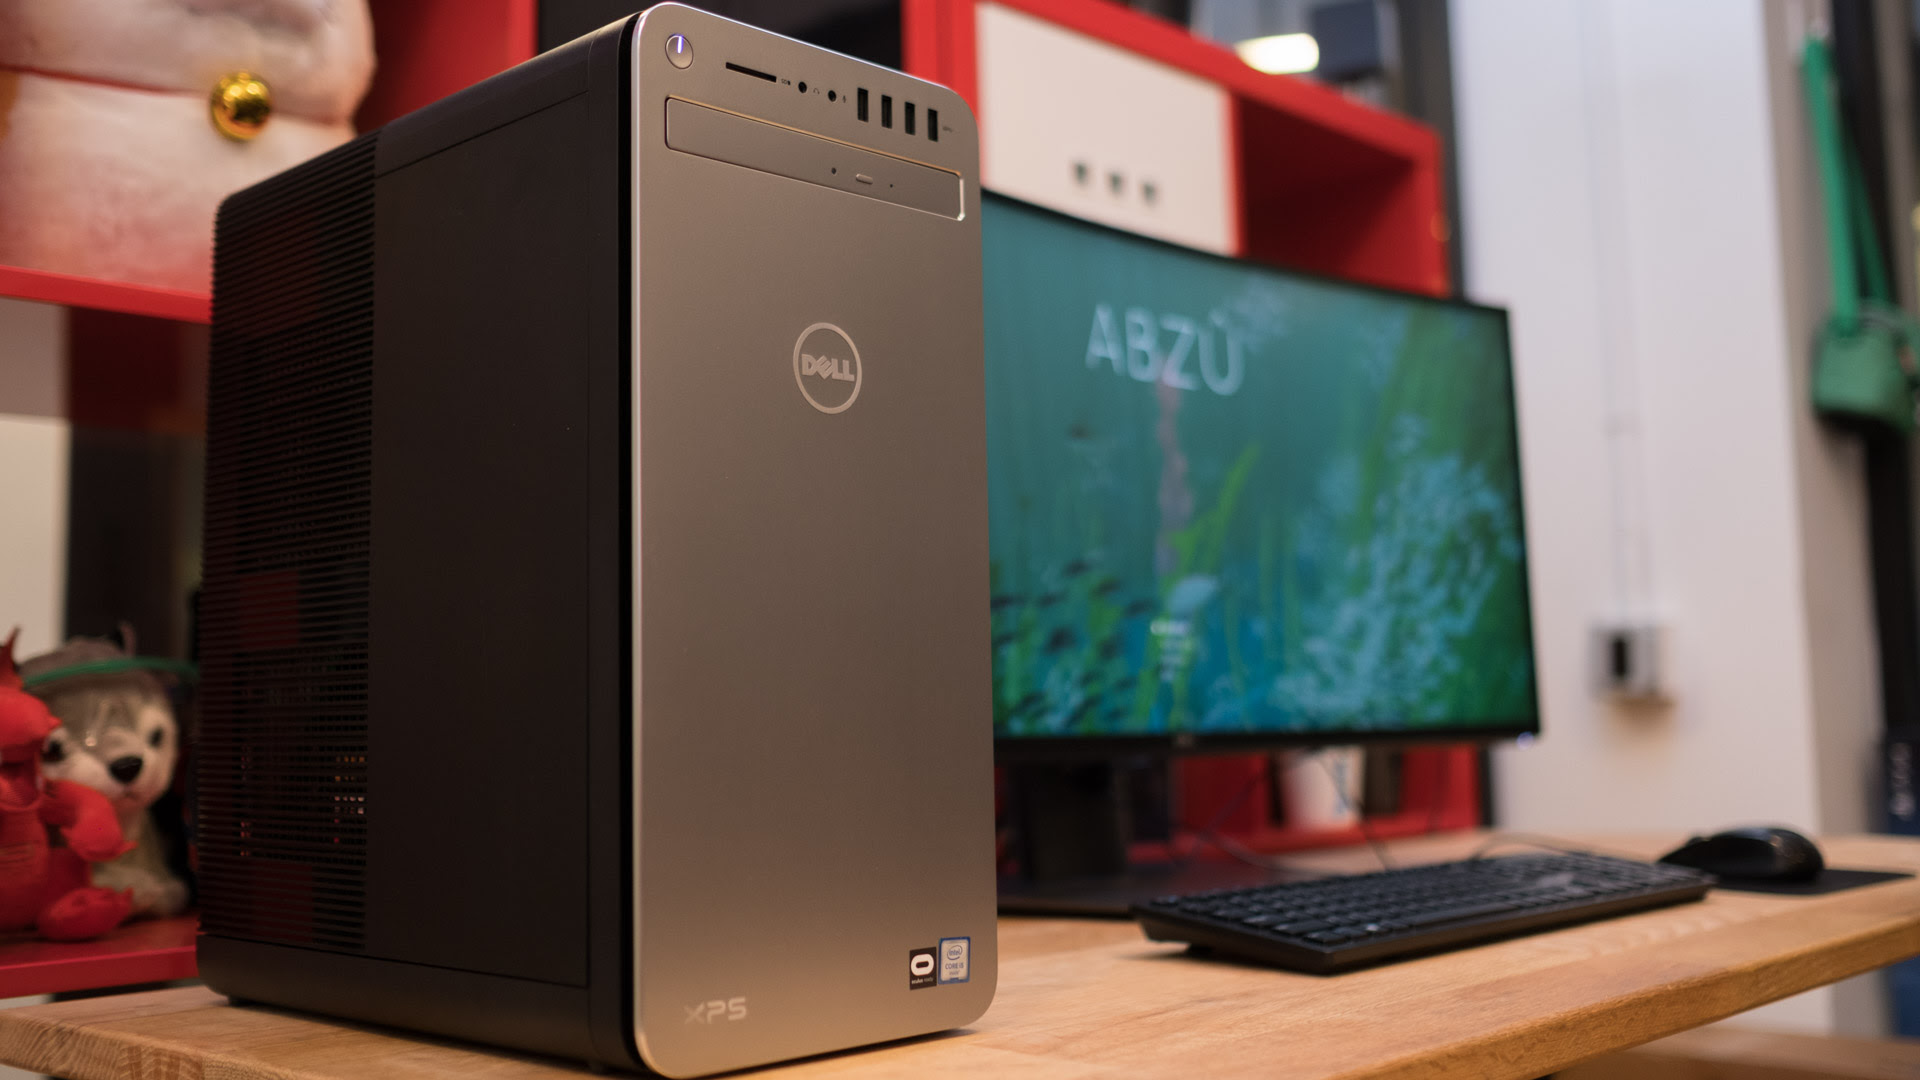 Best computer 2019: the best PCs we've tested